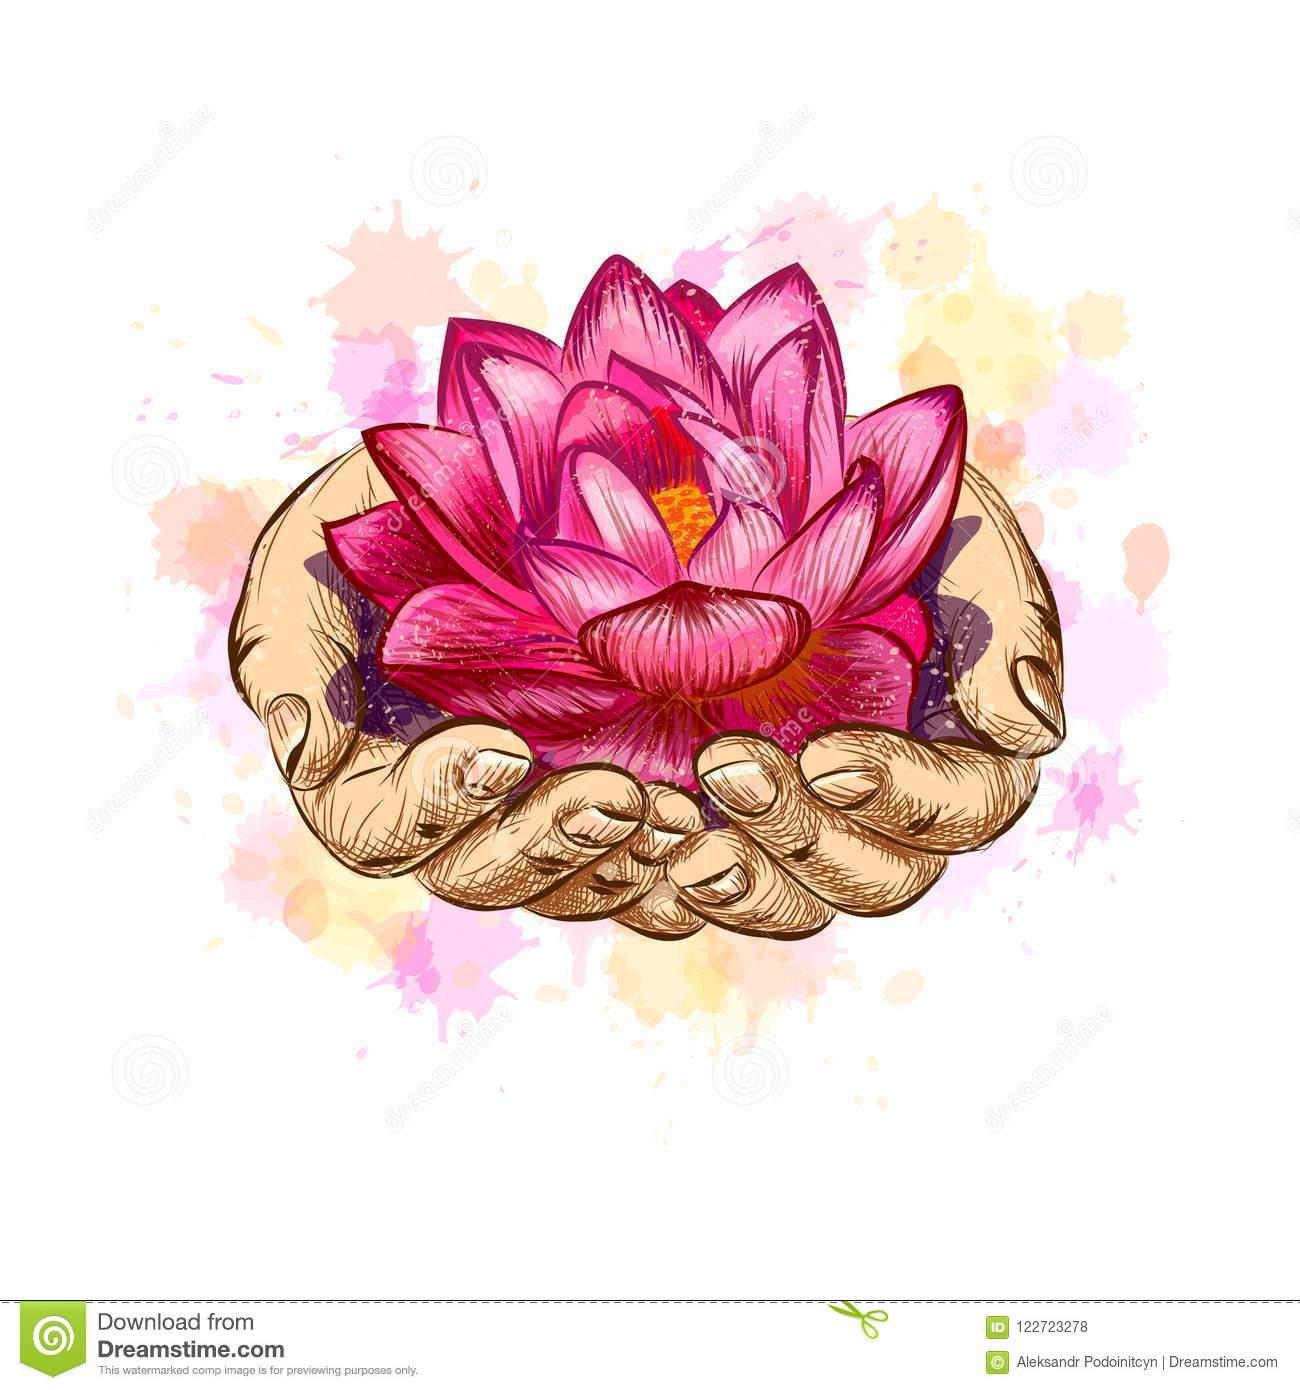 Woman Holding A Lotus Flower Stock Vector Illustration Of Flower